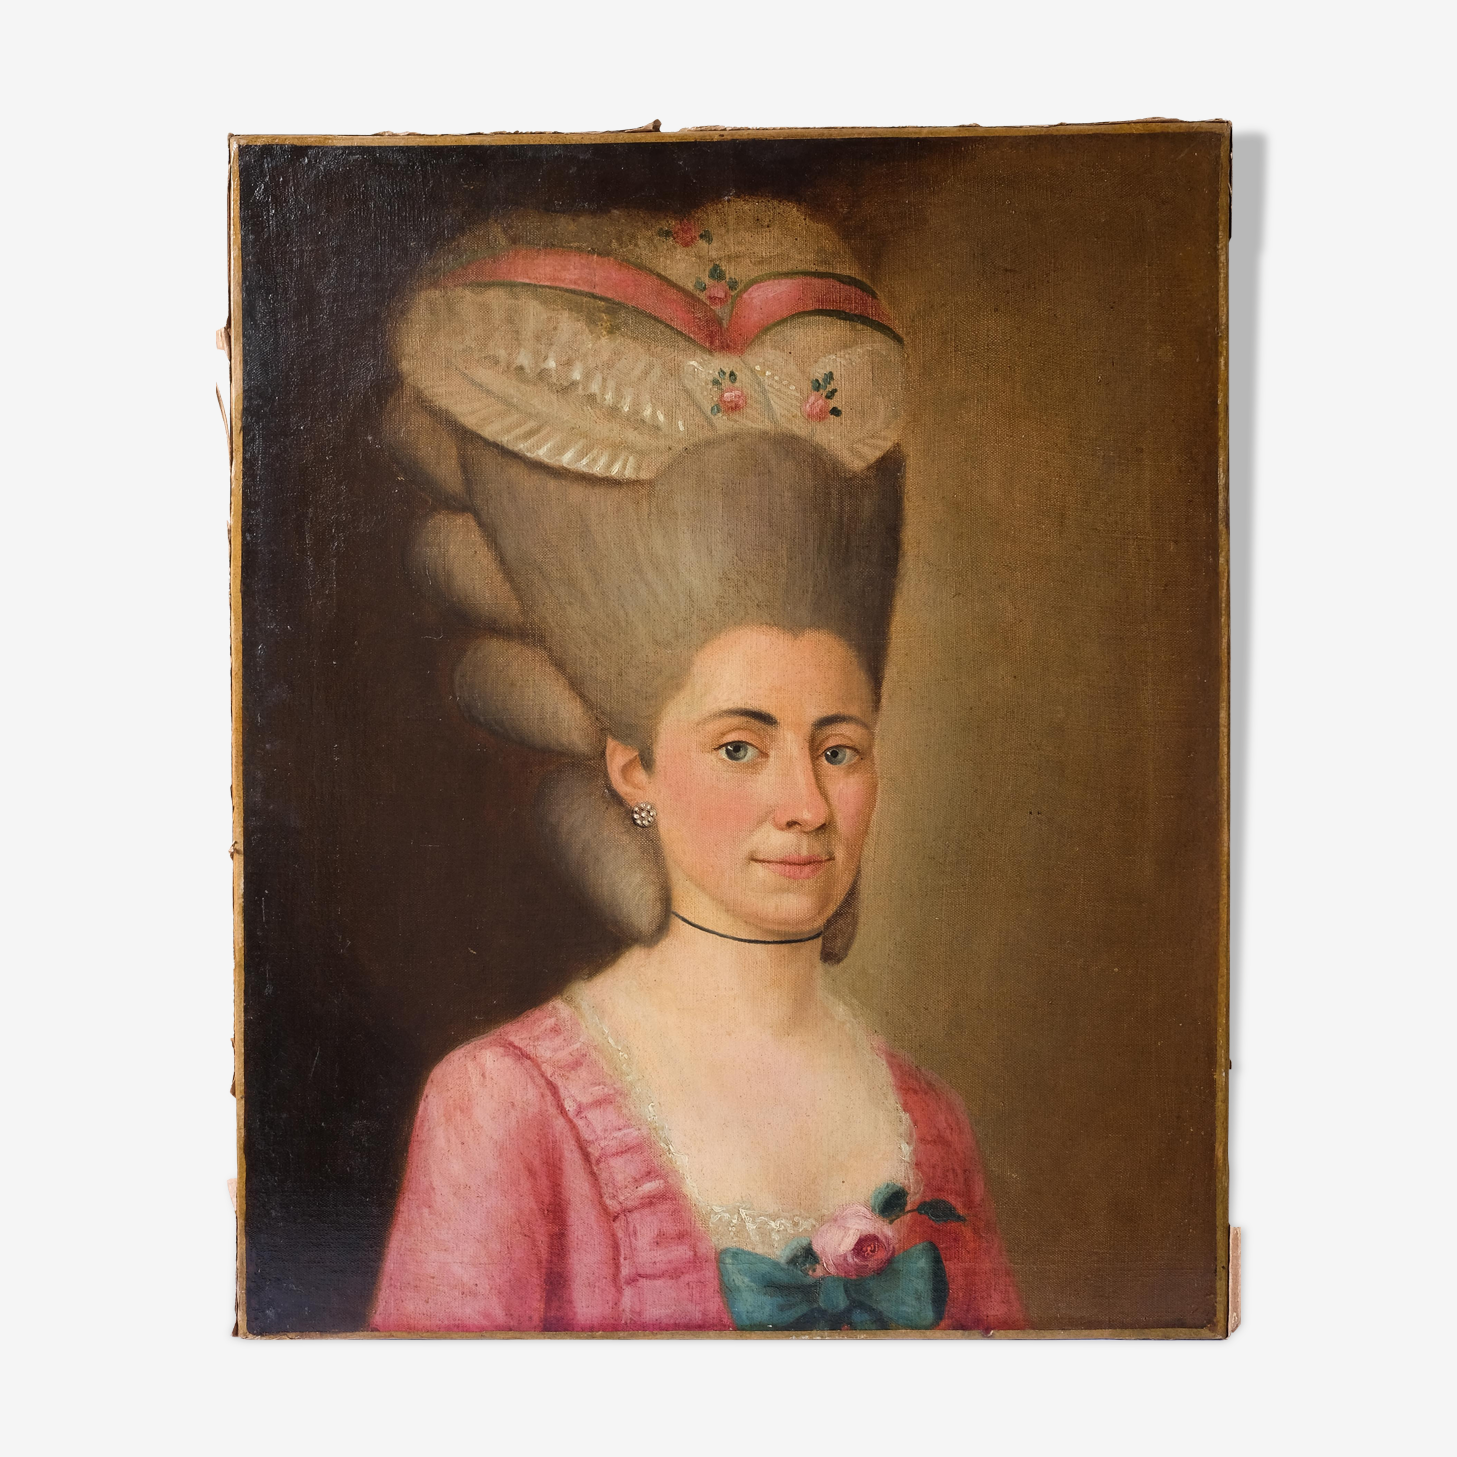 18th ancient painting, portrait of female haircut 18th